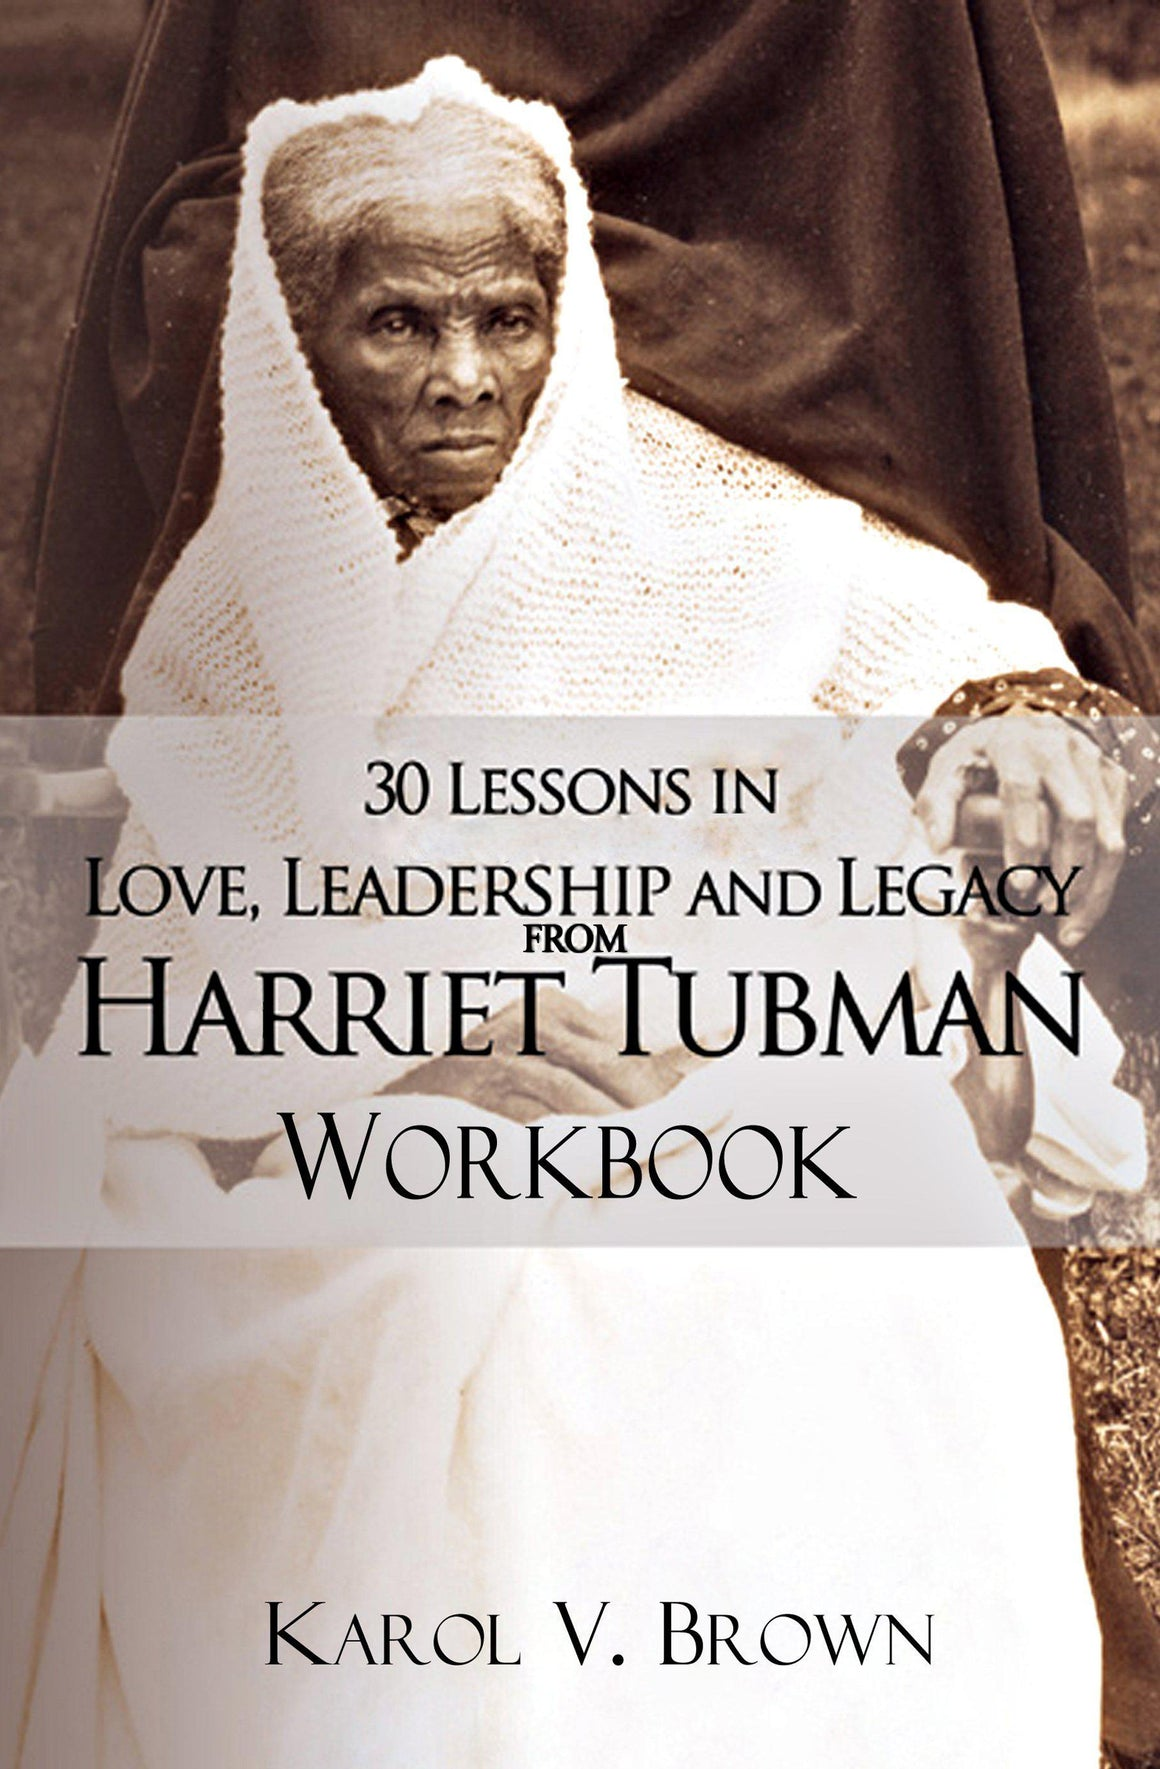 Black History book with Image of Harriet Tubman as an elderly woman